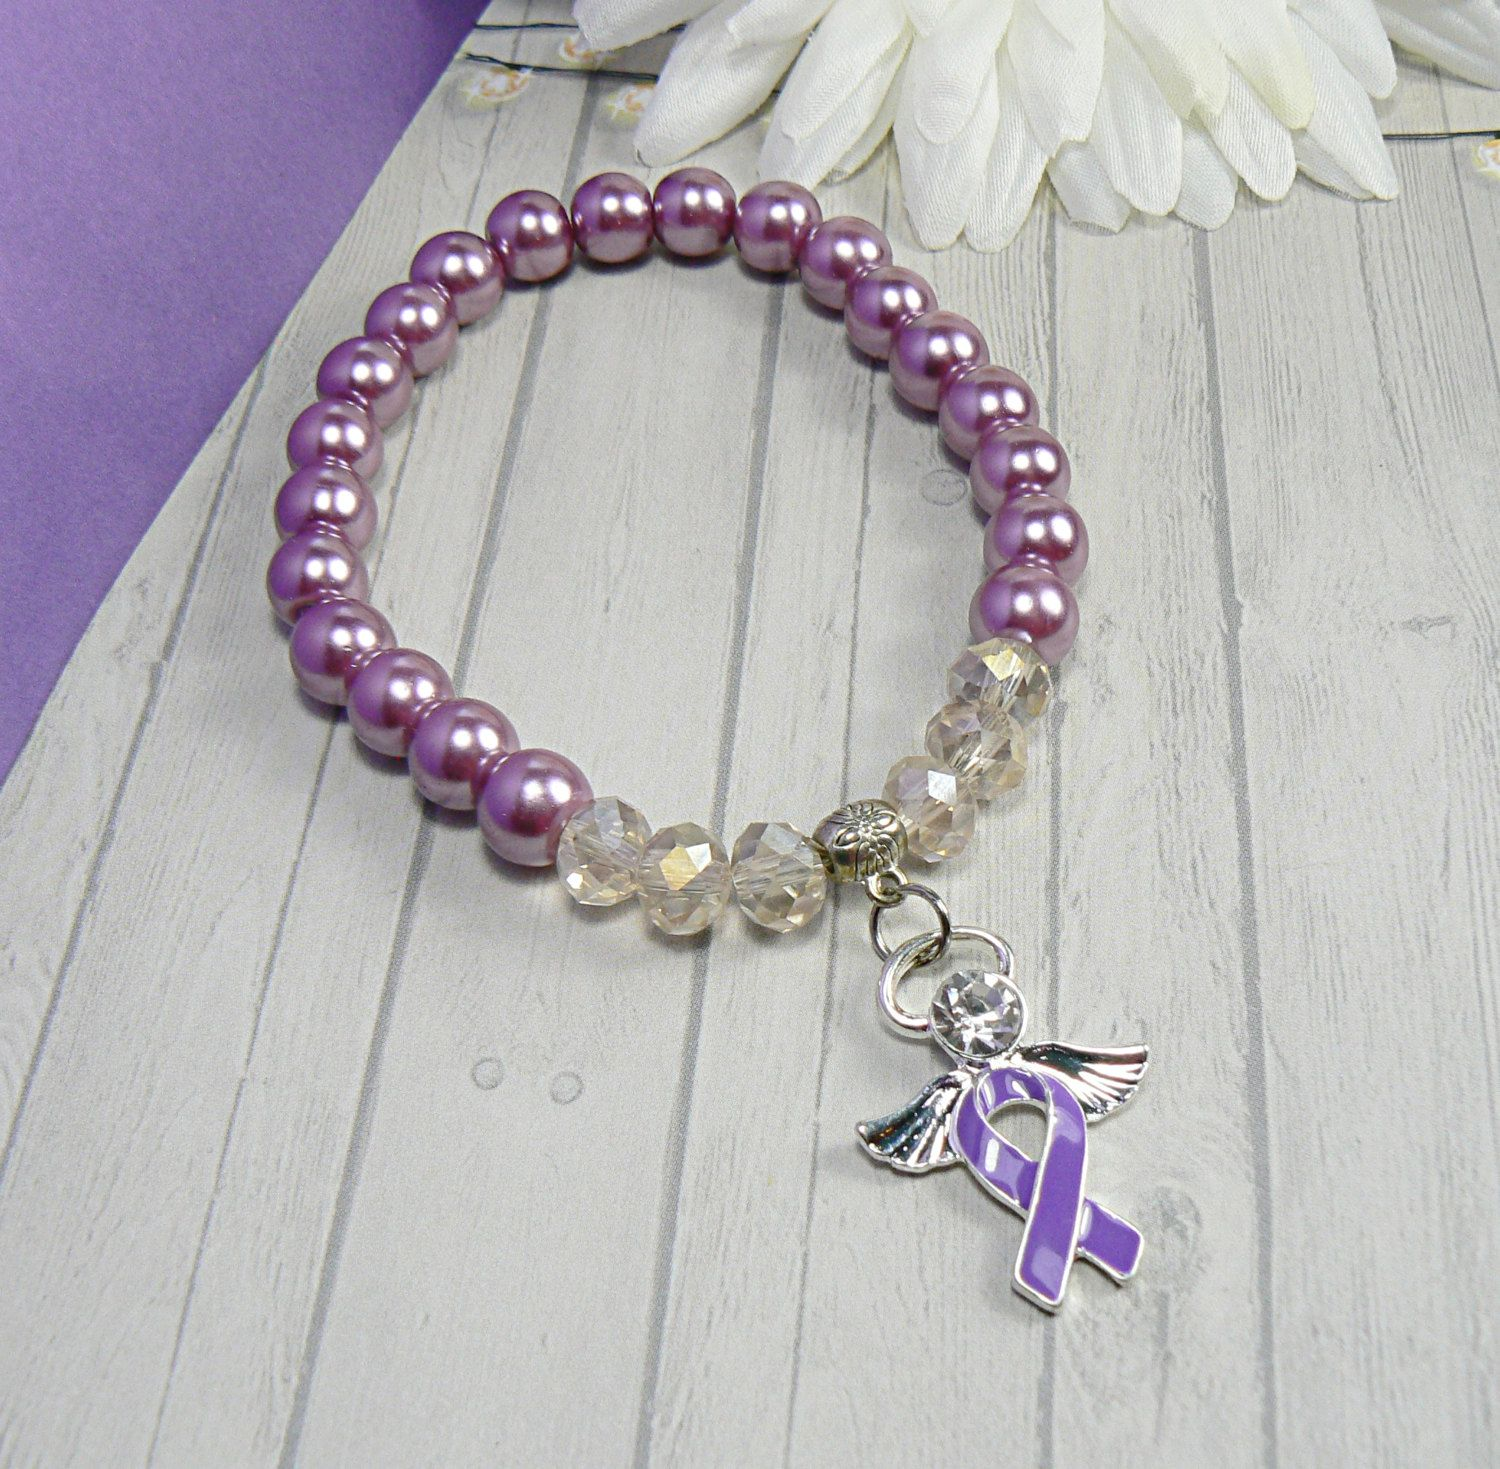 of pin benefits purple alzheimer awareness sale s caregivers bracelet bracelets gemstone unpaid each